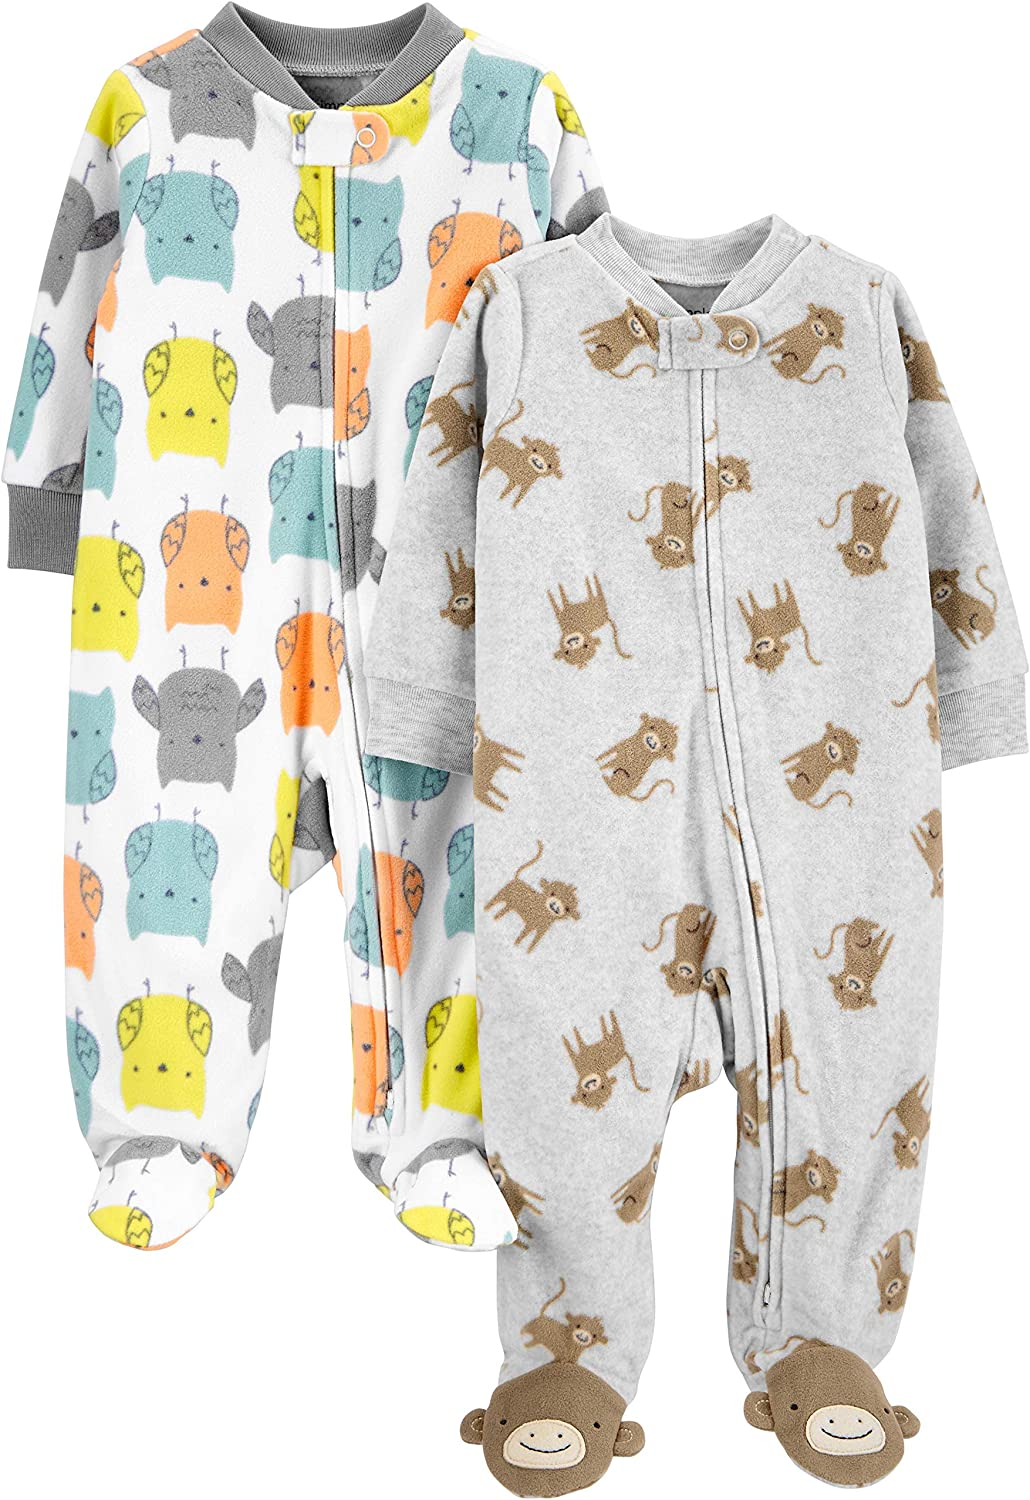 Baby 2-pack Fleece Footed Sleep and Play Simple Joys by Carters Unisex